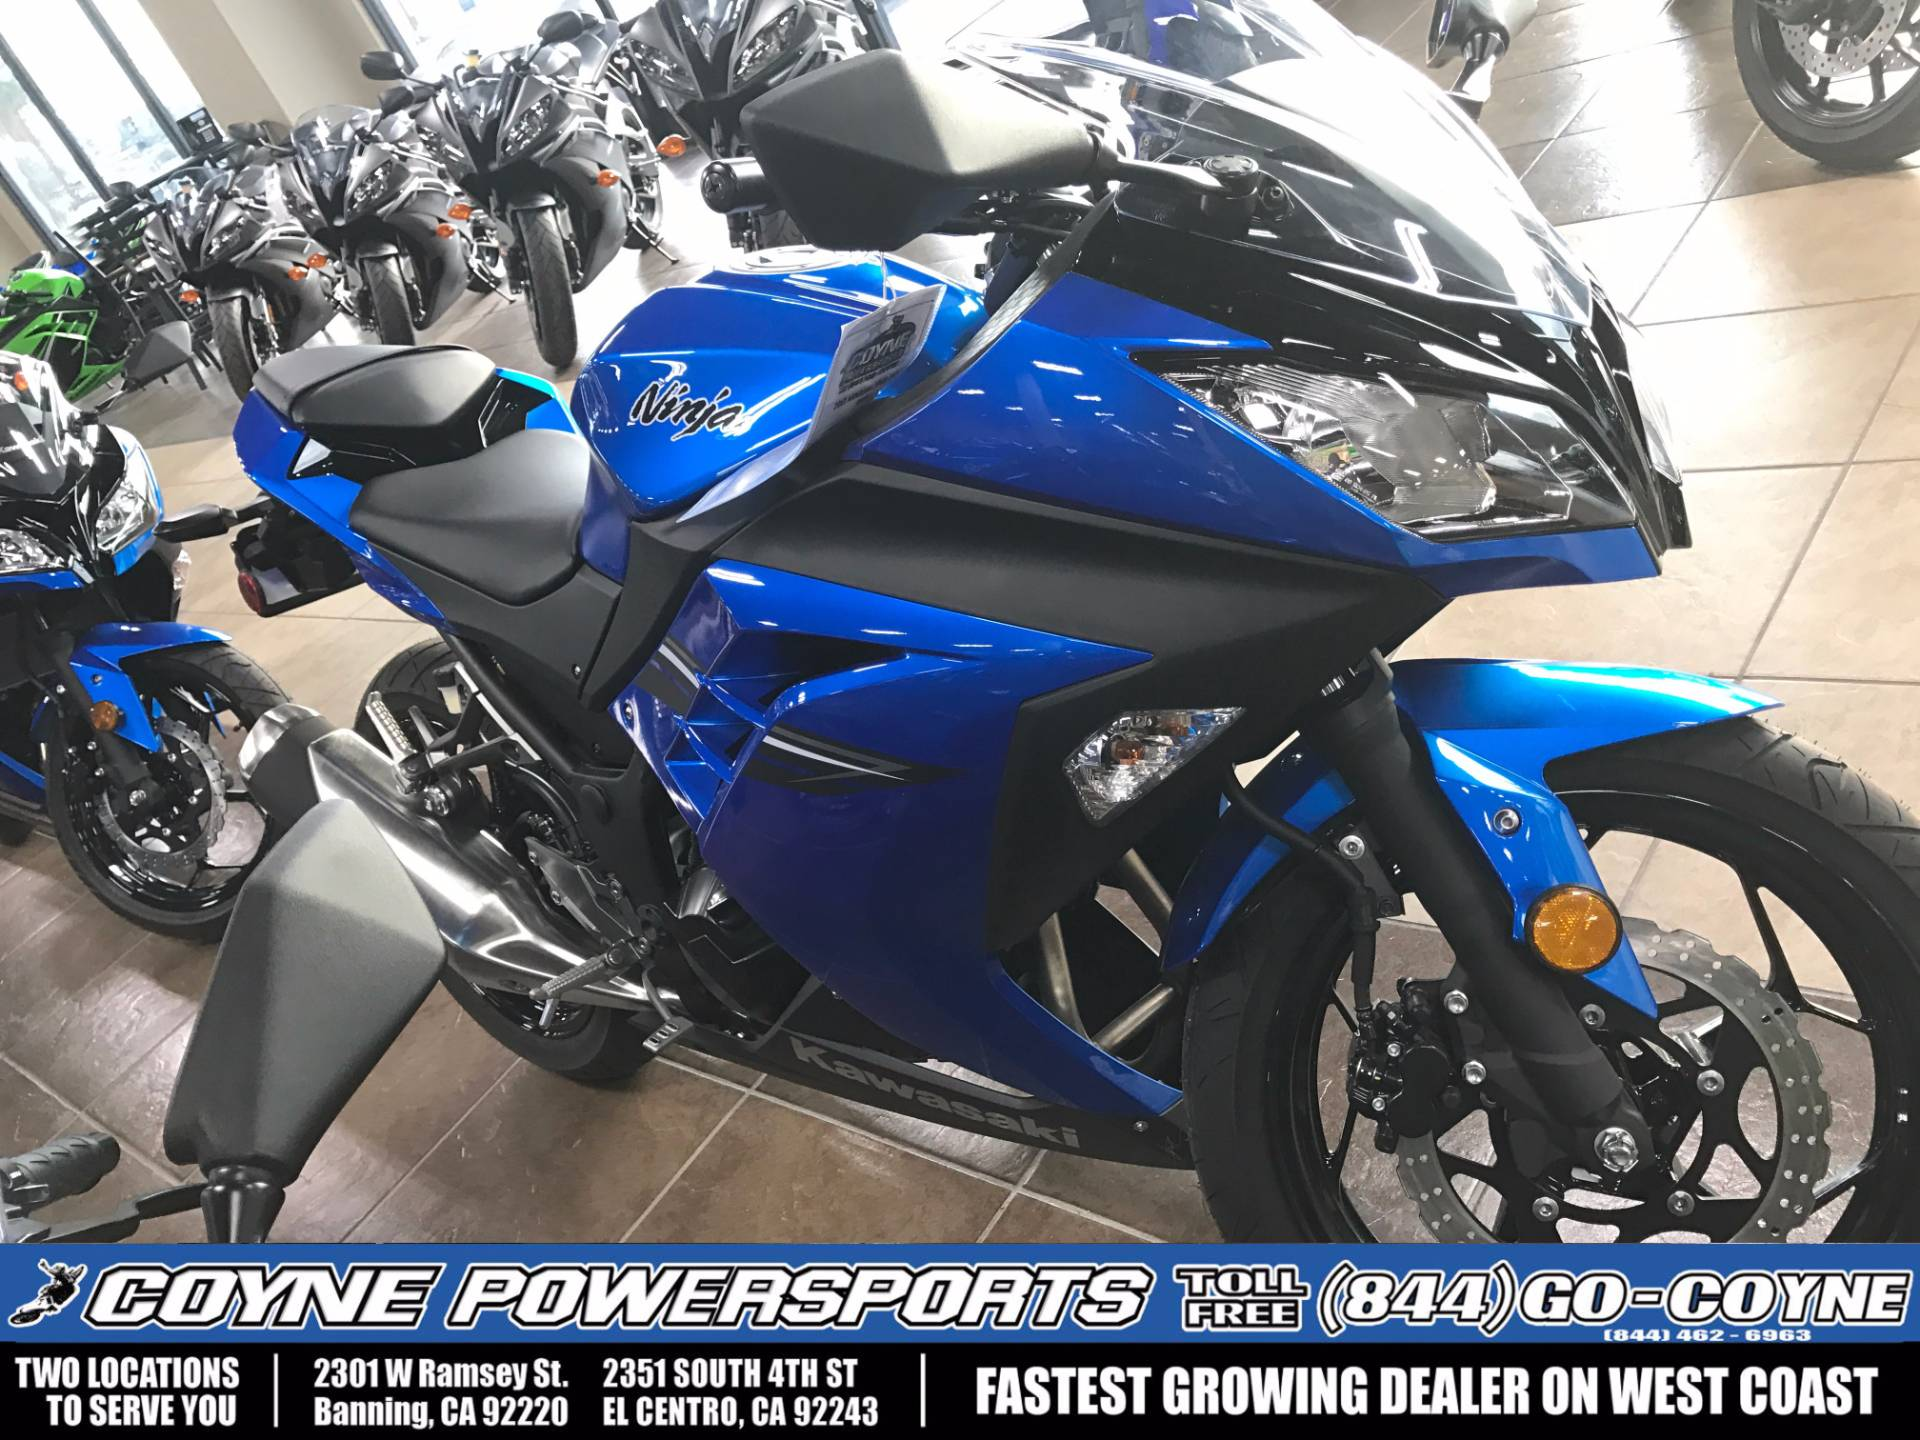 2017 Kawasaki Ninja300 for sale 966